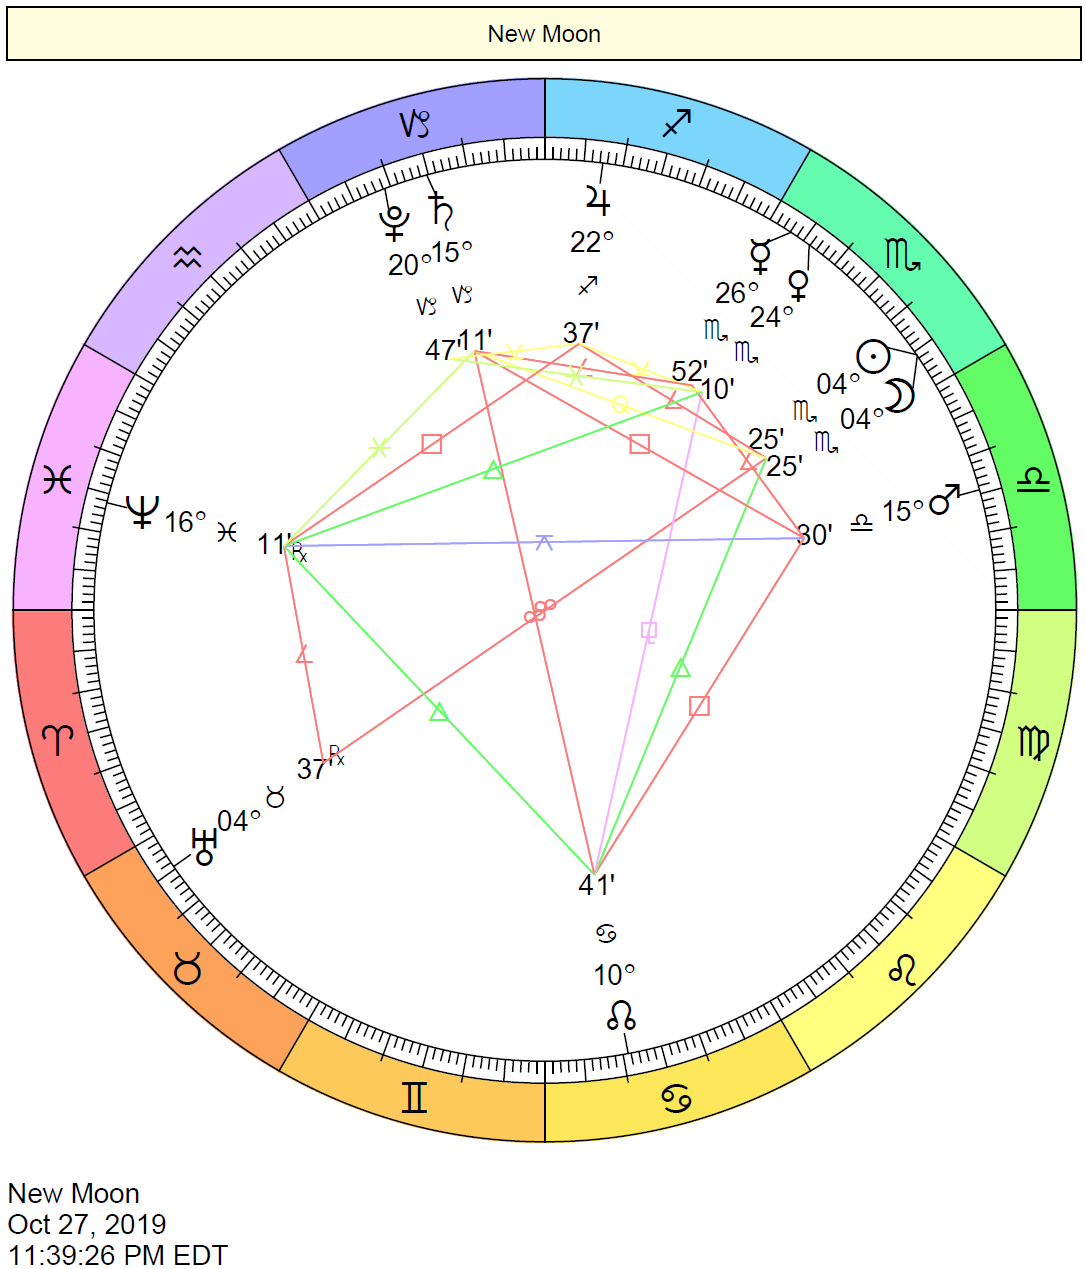 New Moon in Scorpio Chart: October 27, 2019